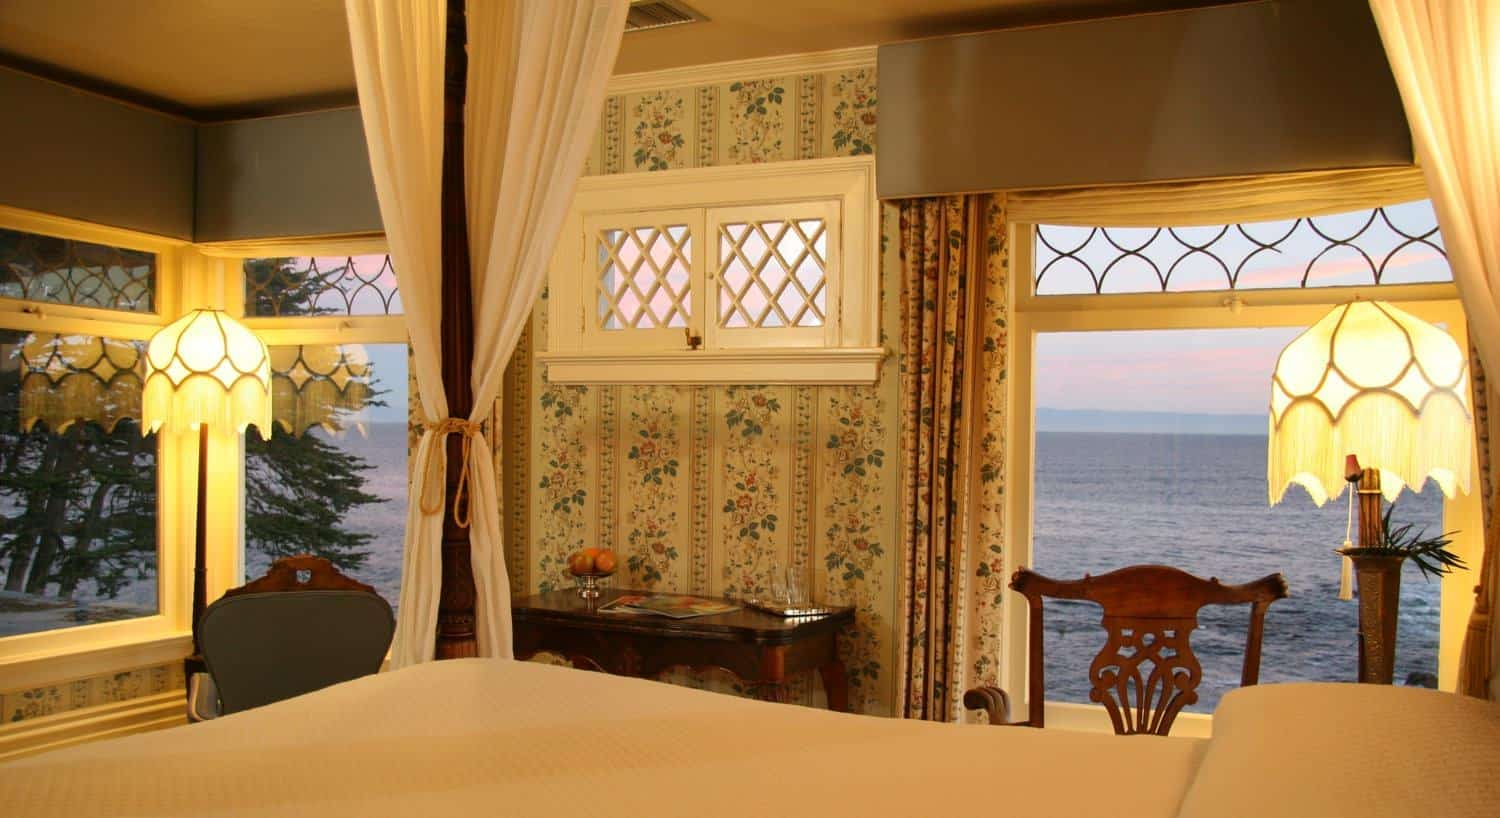 Guest room with several windows overlooking the Bay, floral walls, and white canopy bed